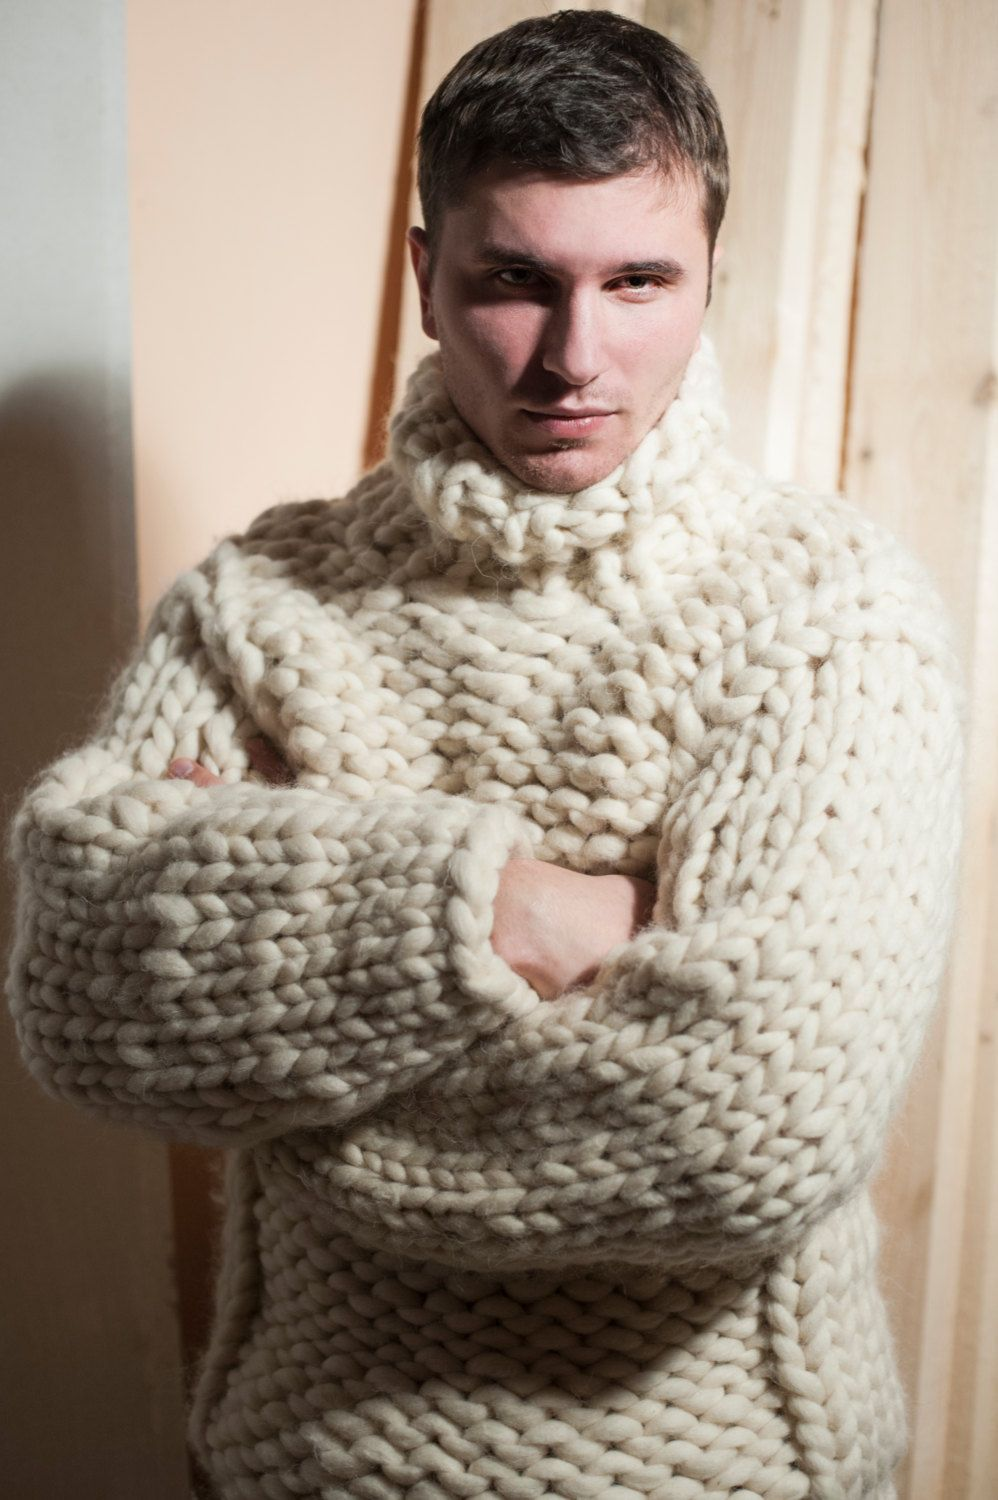 Super Chunky Knit Men S Sweater Big Knit Turtleneck